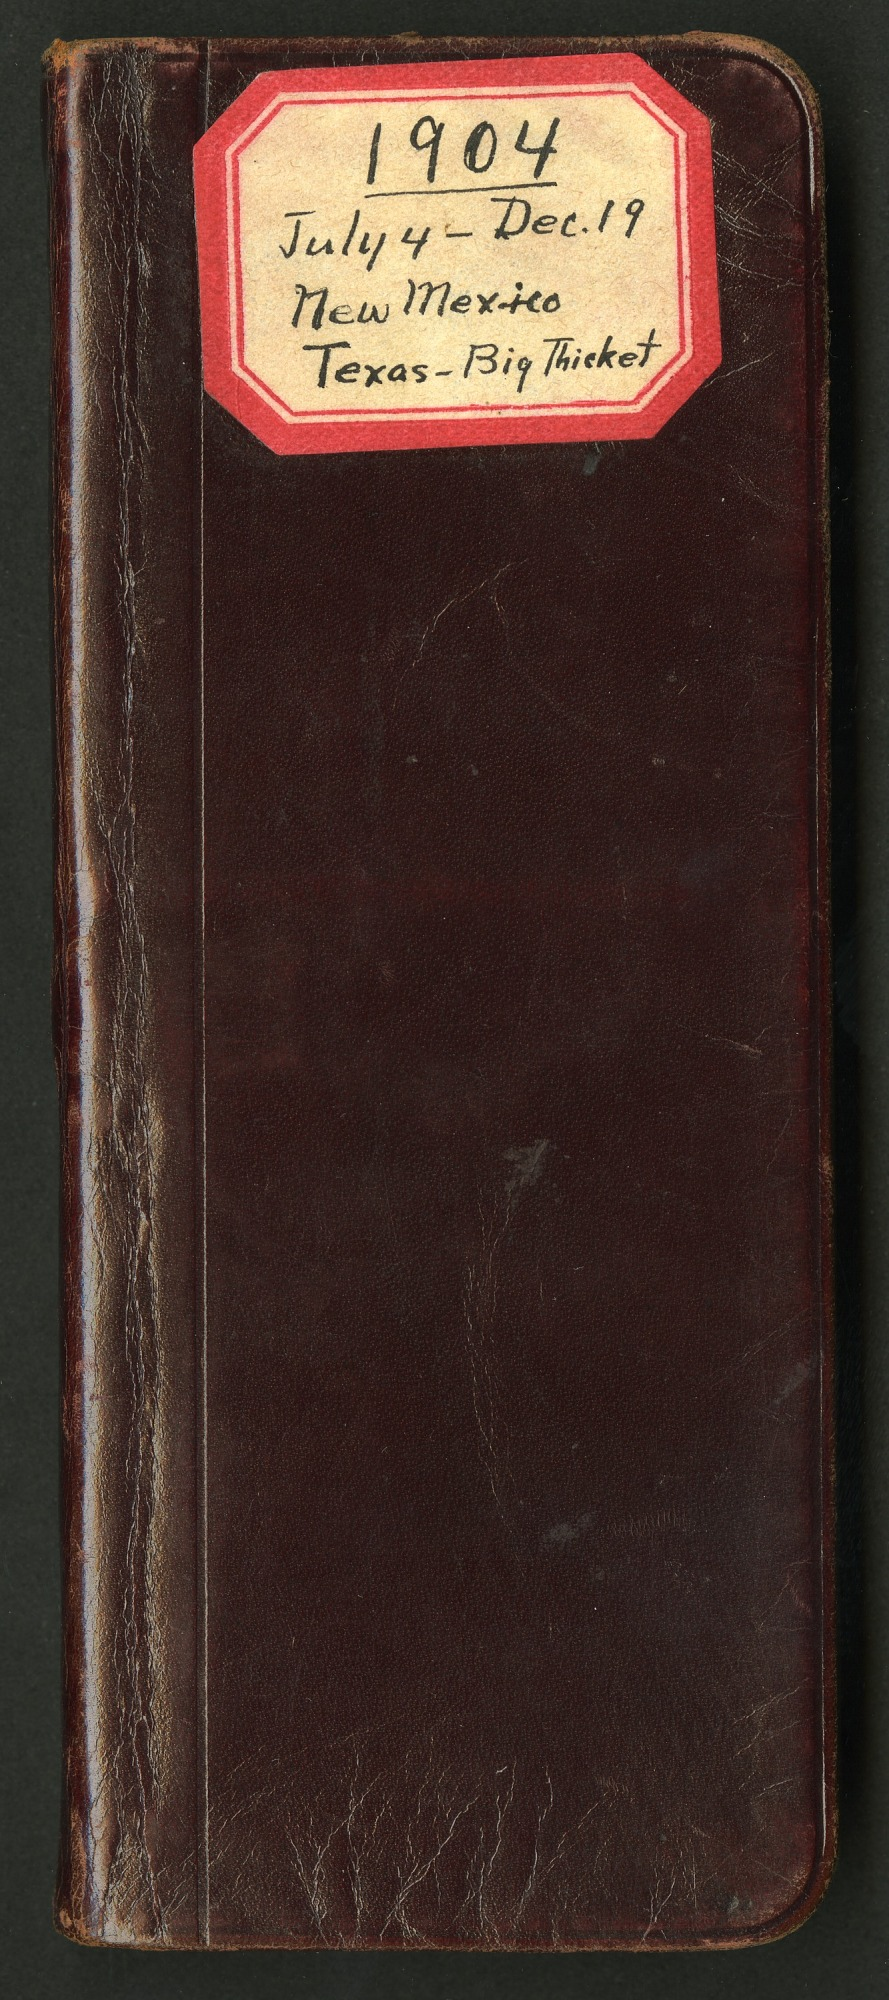 Field notes, Texas and New Mexico, July 4-December 19, 1904